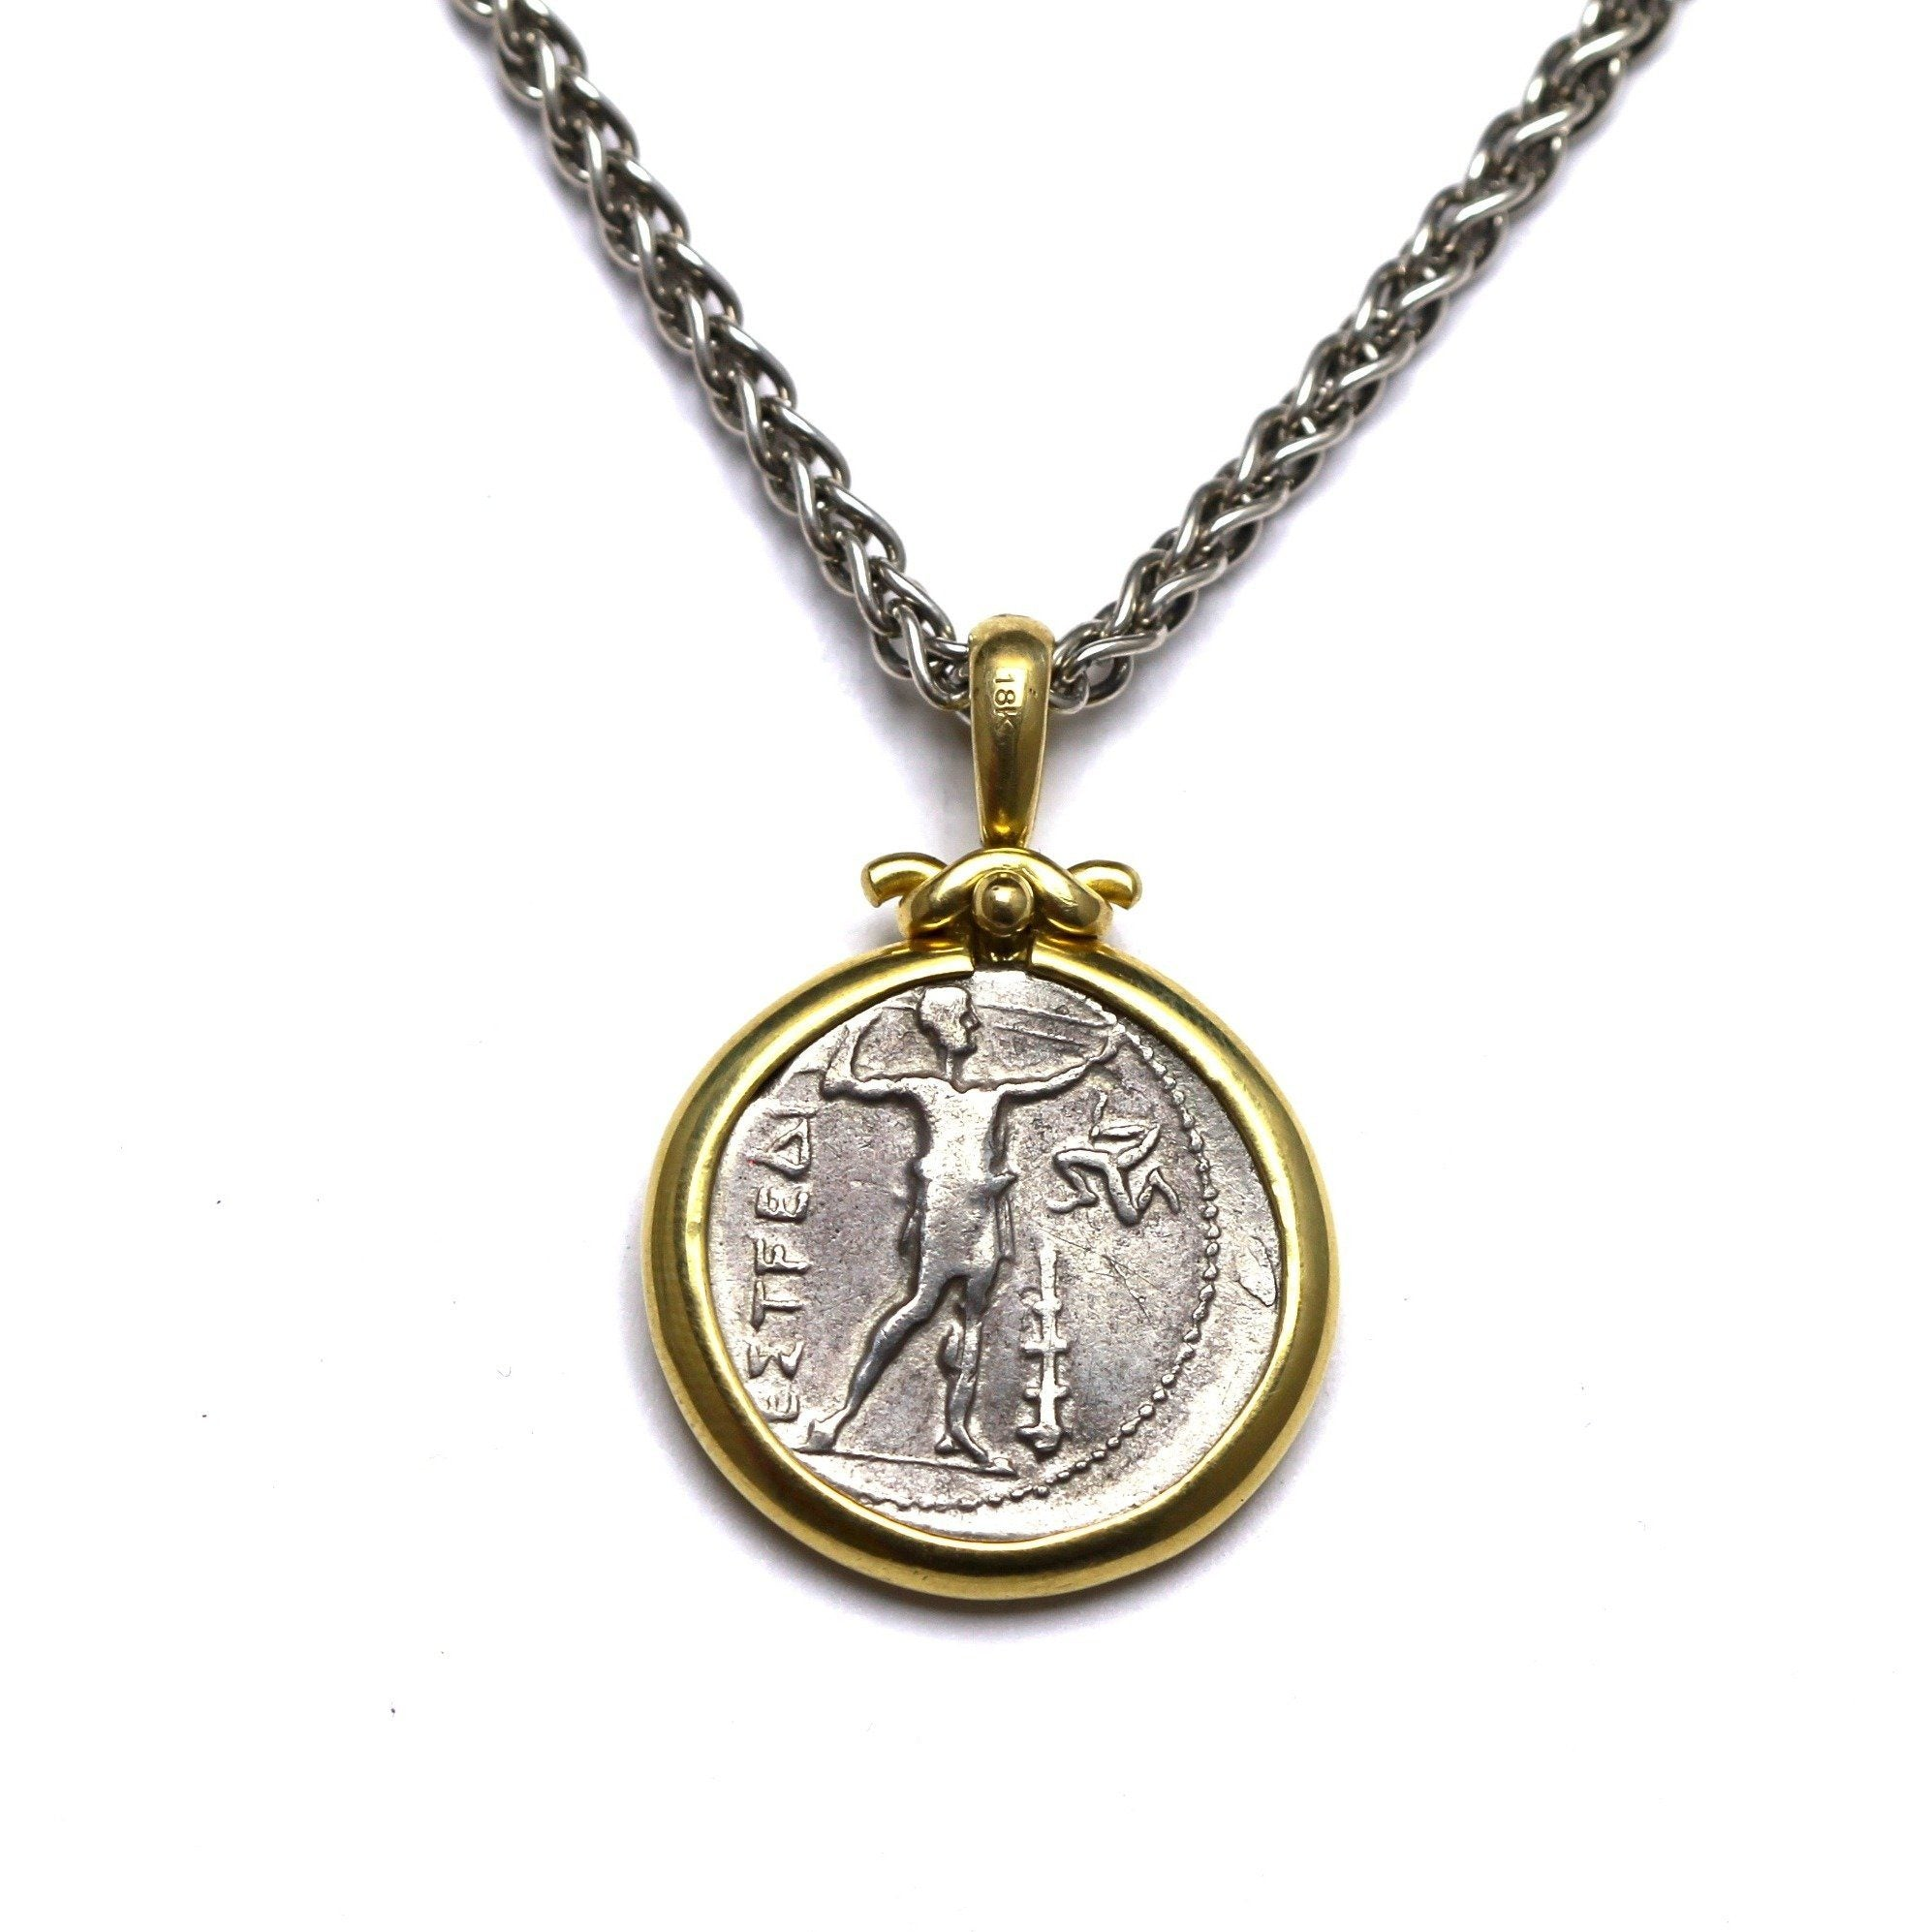 18K Gold Pendant, Sterling Silver Chain, Aspendos Olympic Games Coin, Greek, Cert. ID12797 - Erez Ancient Coin Jewelry, ancient coin jewelry, men jewelry, genuine ancient coins, made in the US